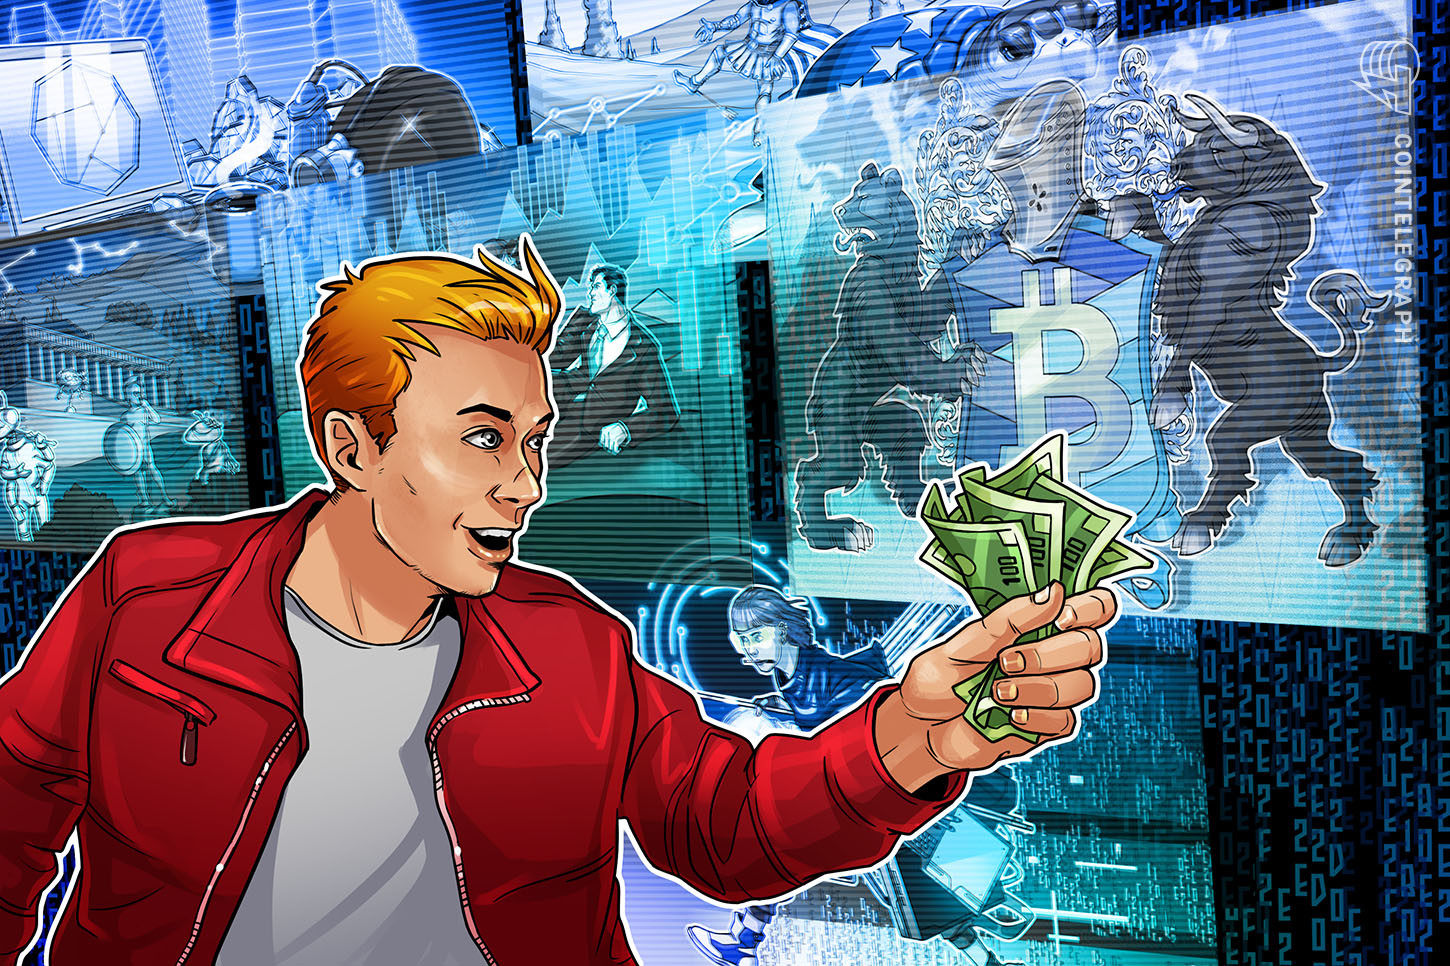 NFT innovator HODL Assets acquires blockchain social commerce firm CoinLinked